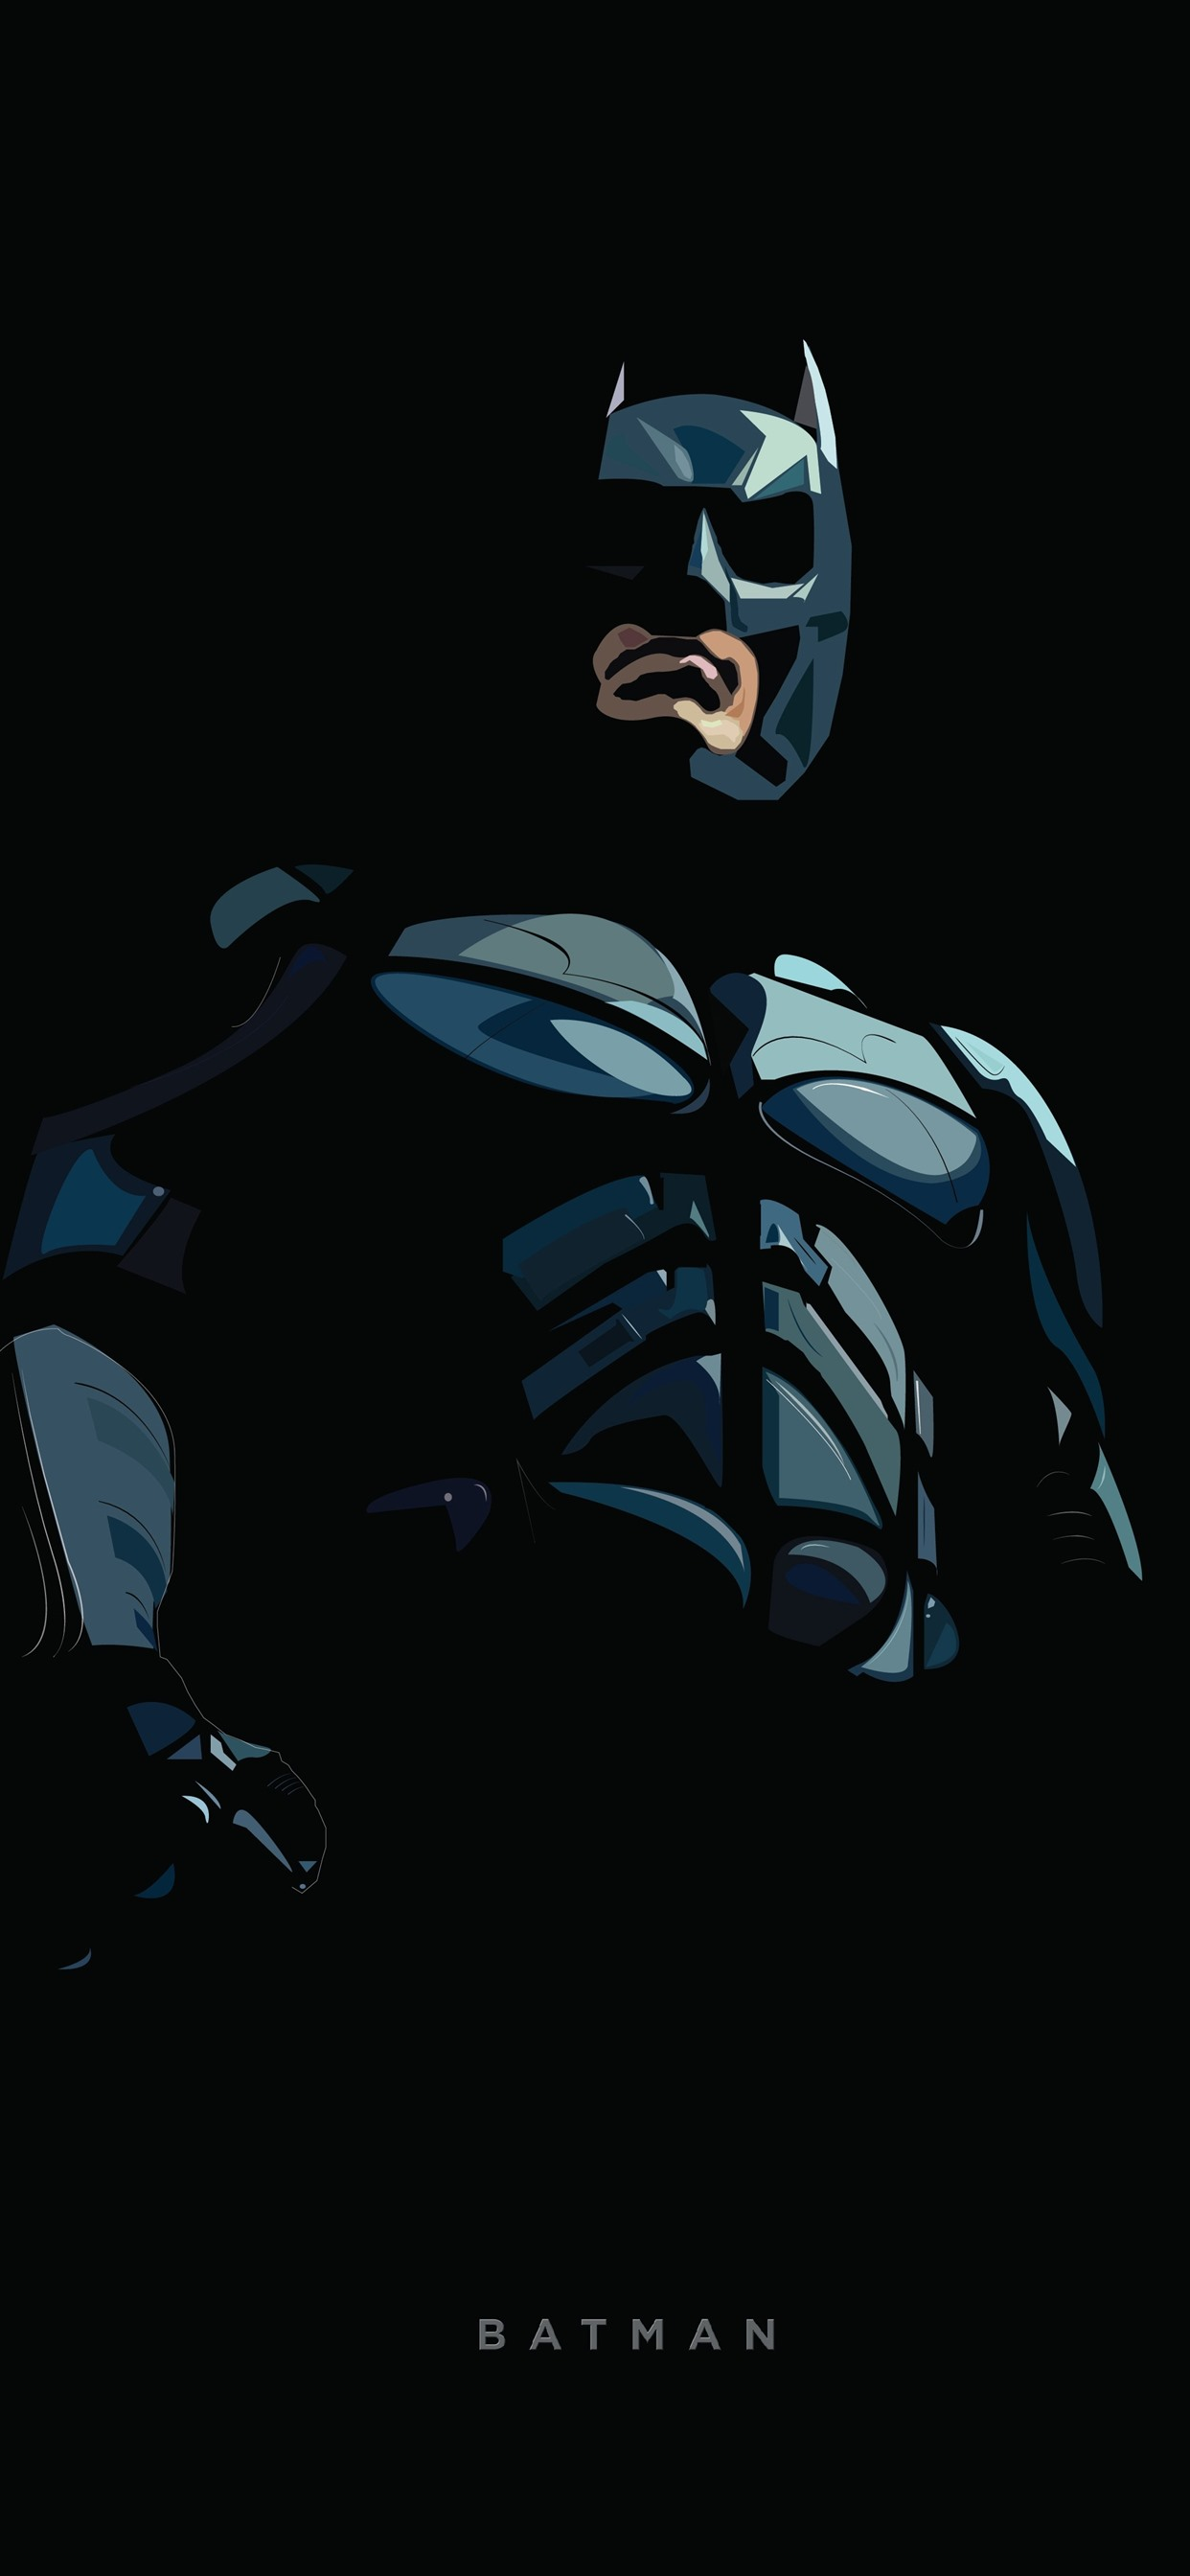 Wallpaper Batman Superhero Art Picture Black Background